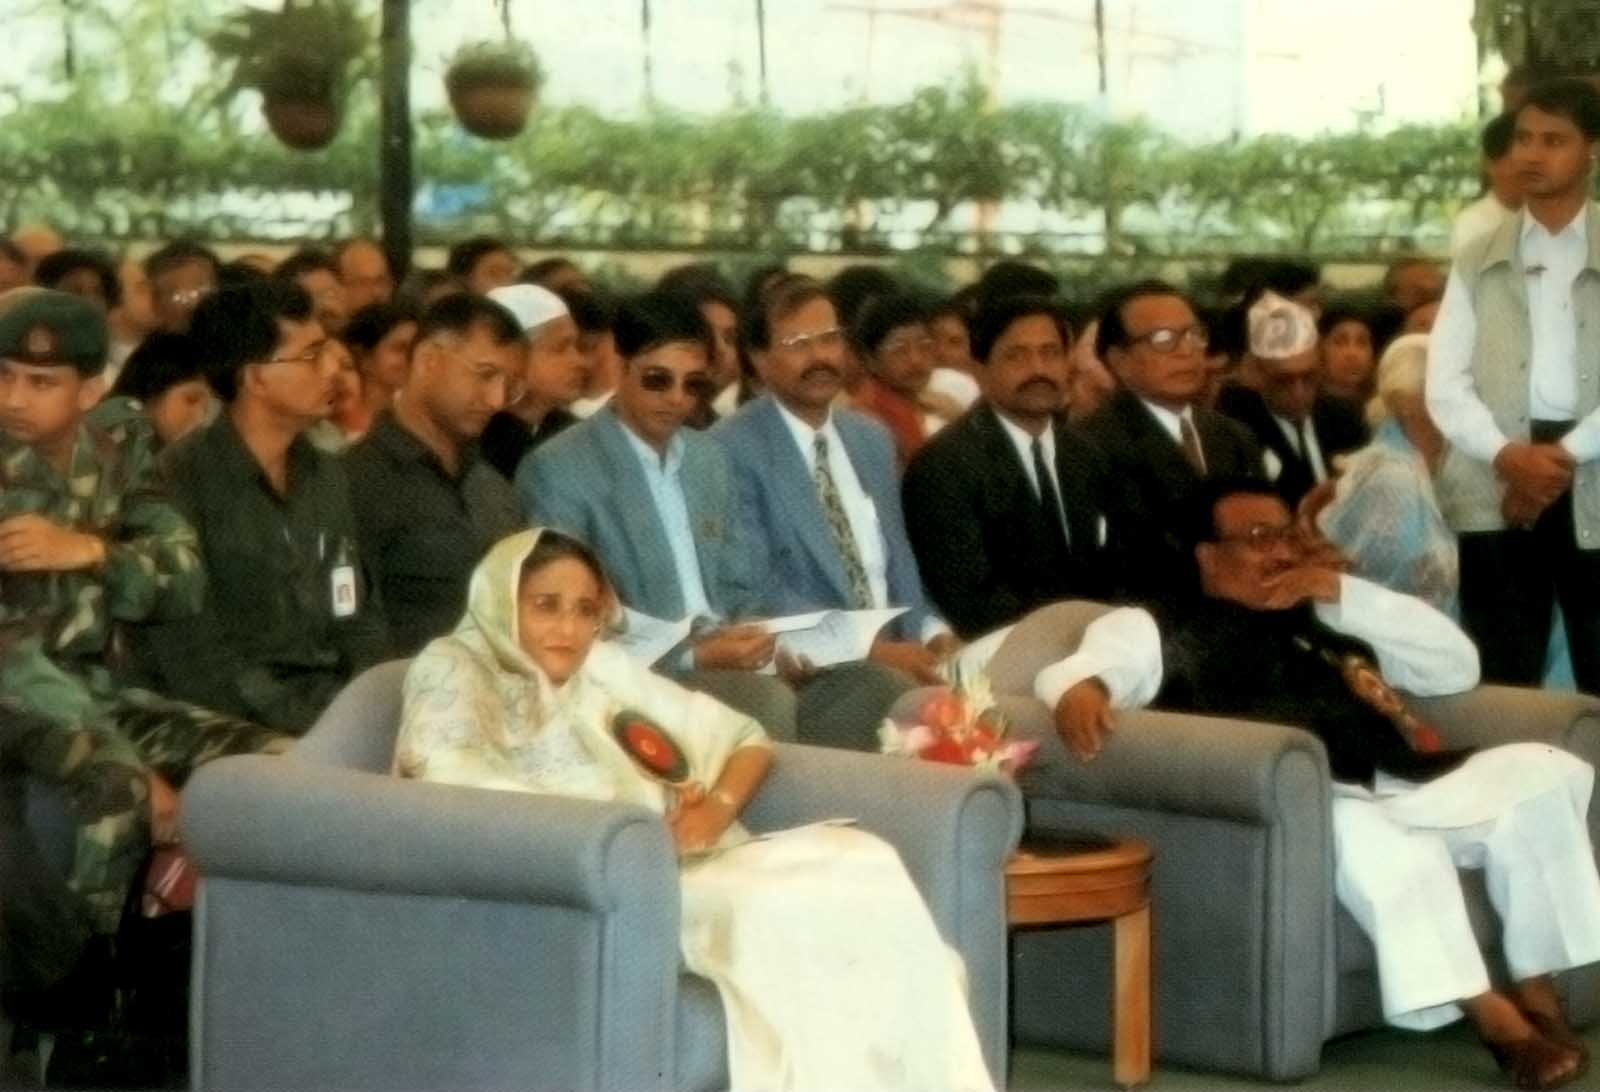 Prime Minister Sheikh Hasina at the 13th ACMR Bangladesh, 1997